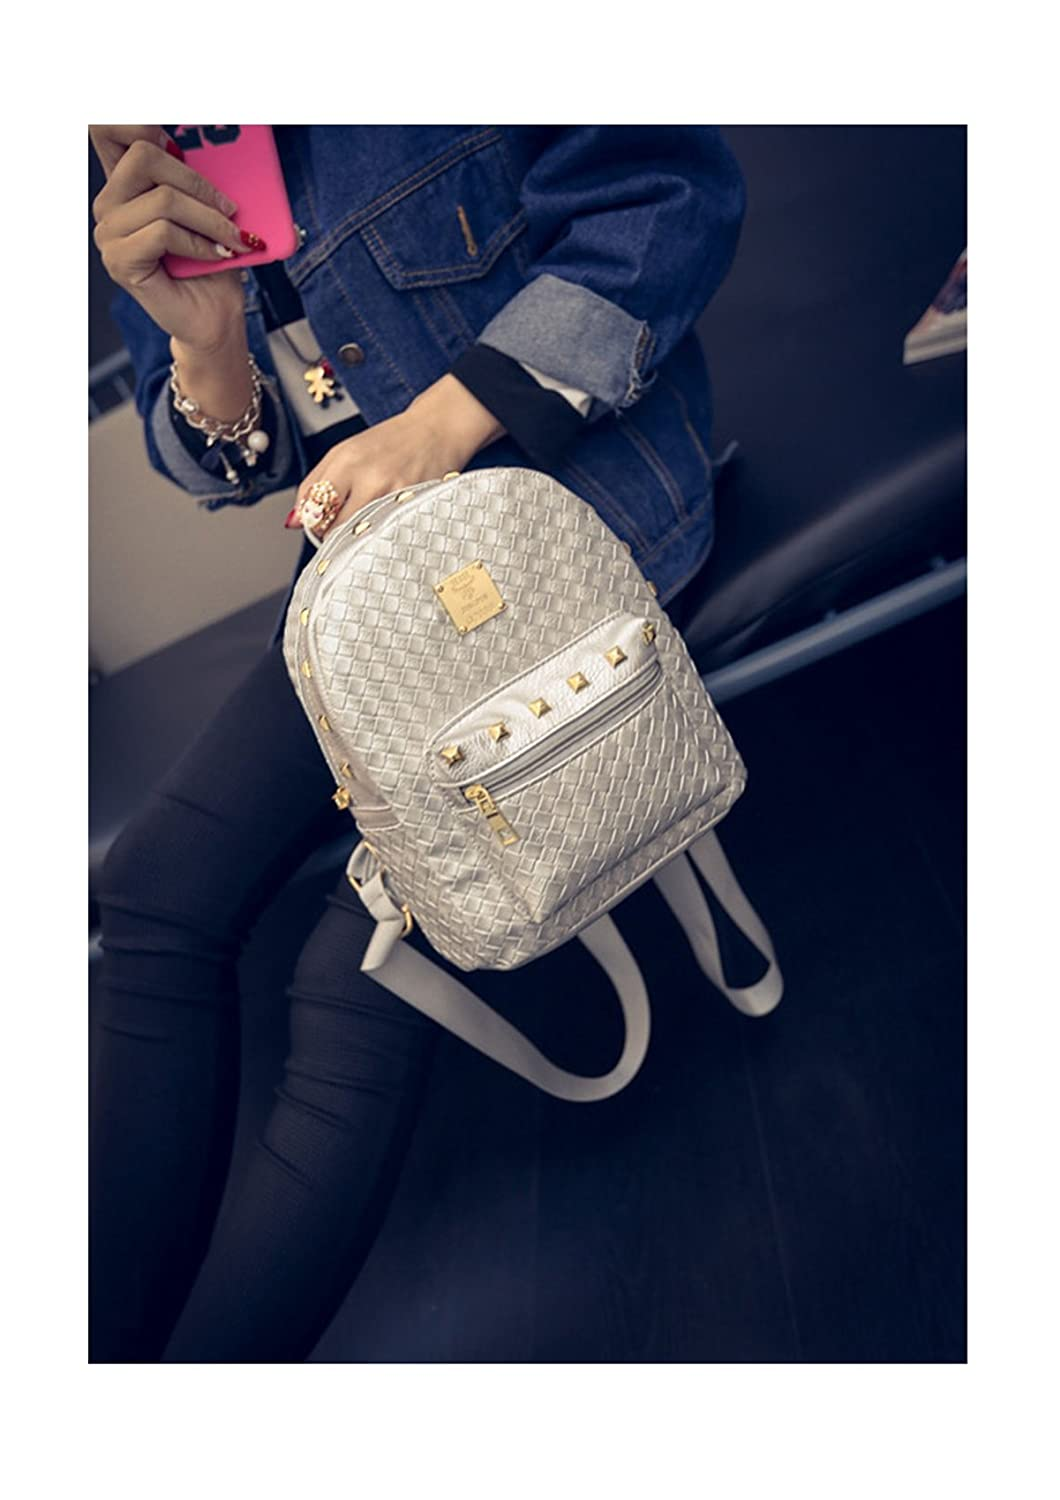 ThinkMax Women Fashion Rivet Travel Satchel Shoulder Bag Leather Backpack School Weave Rucksack Silver UK-I13828-LOVE